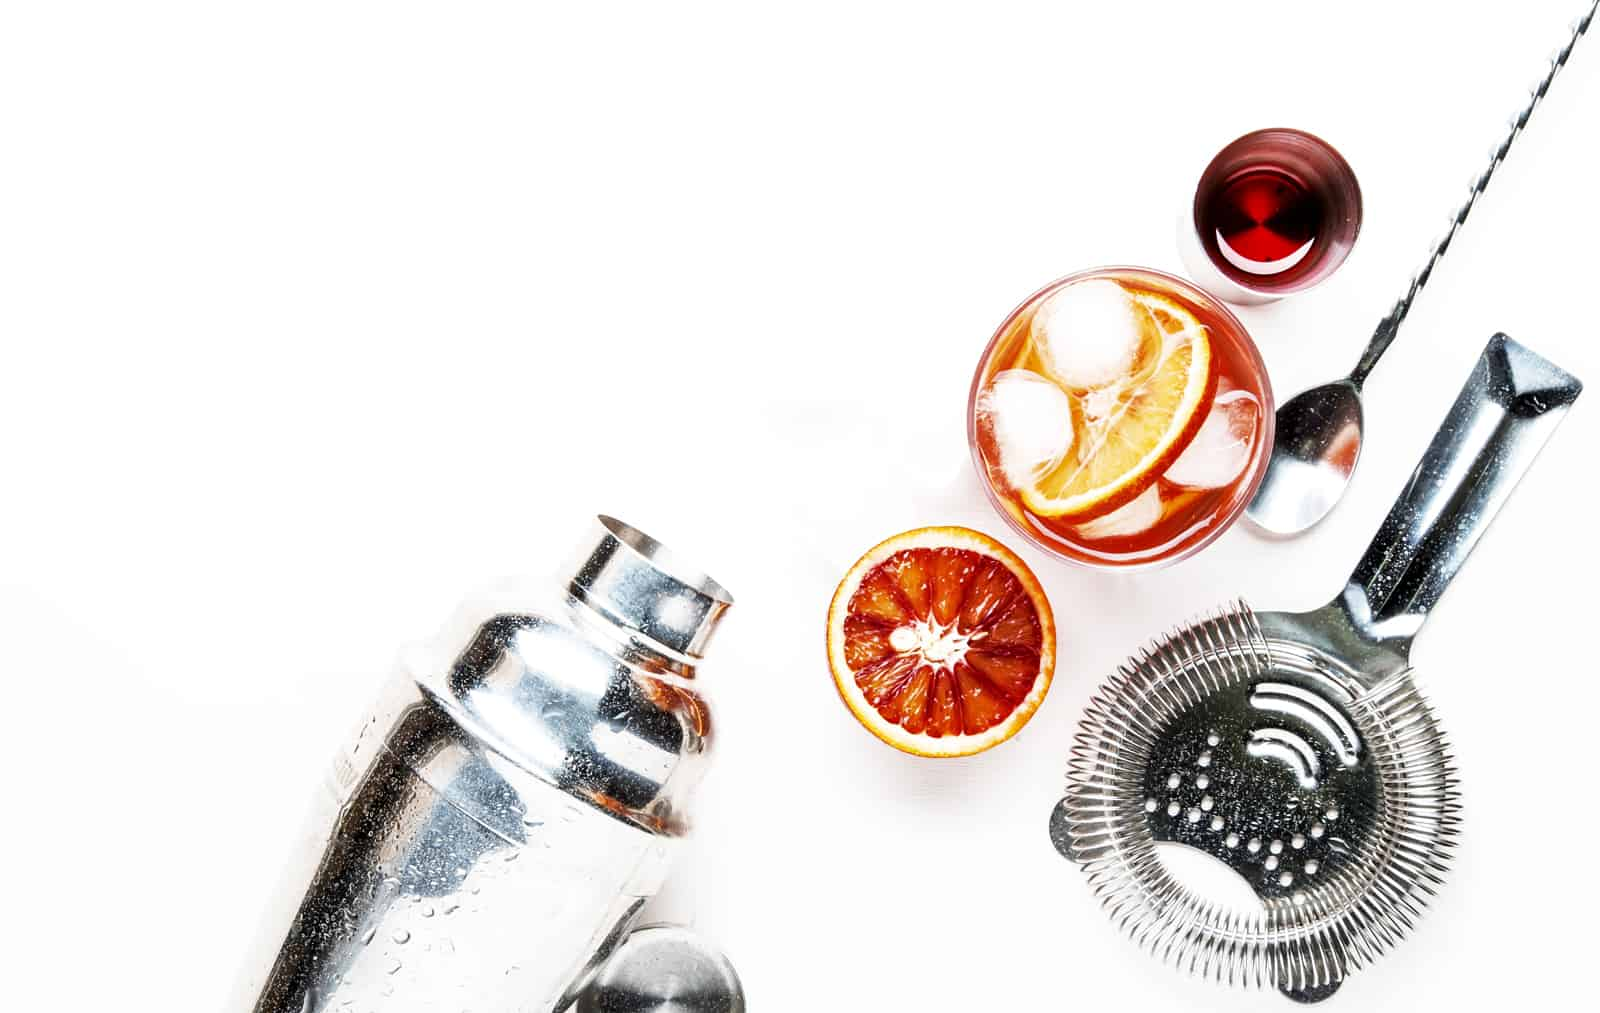 a top view of a silver cocktail shaker lying next to a cocktail strainer, bar spoon, orange and a cocktail on a white background